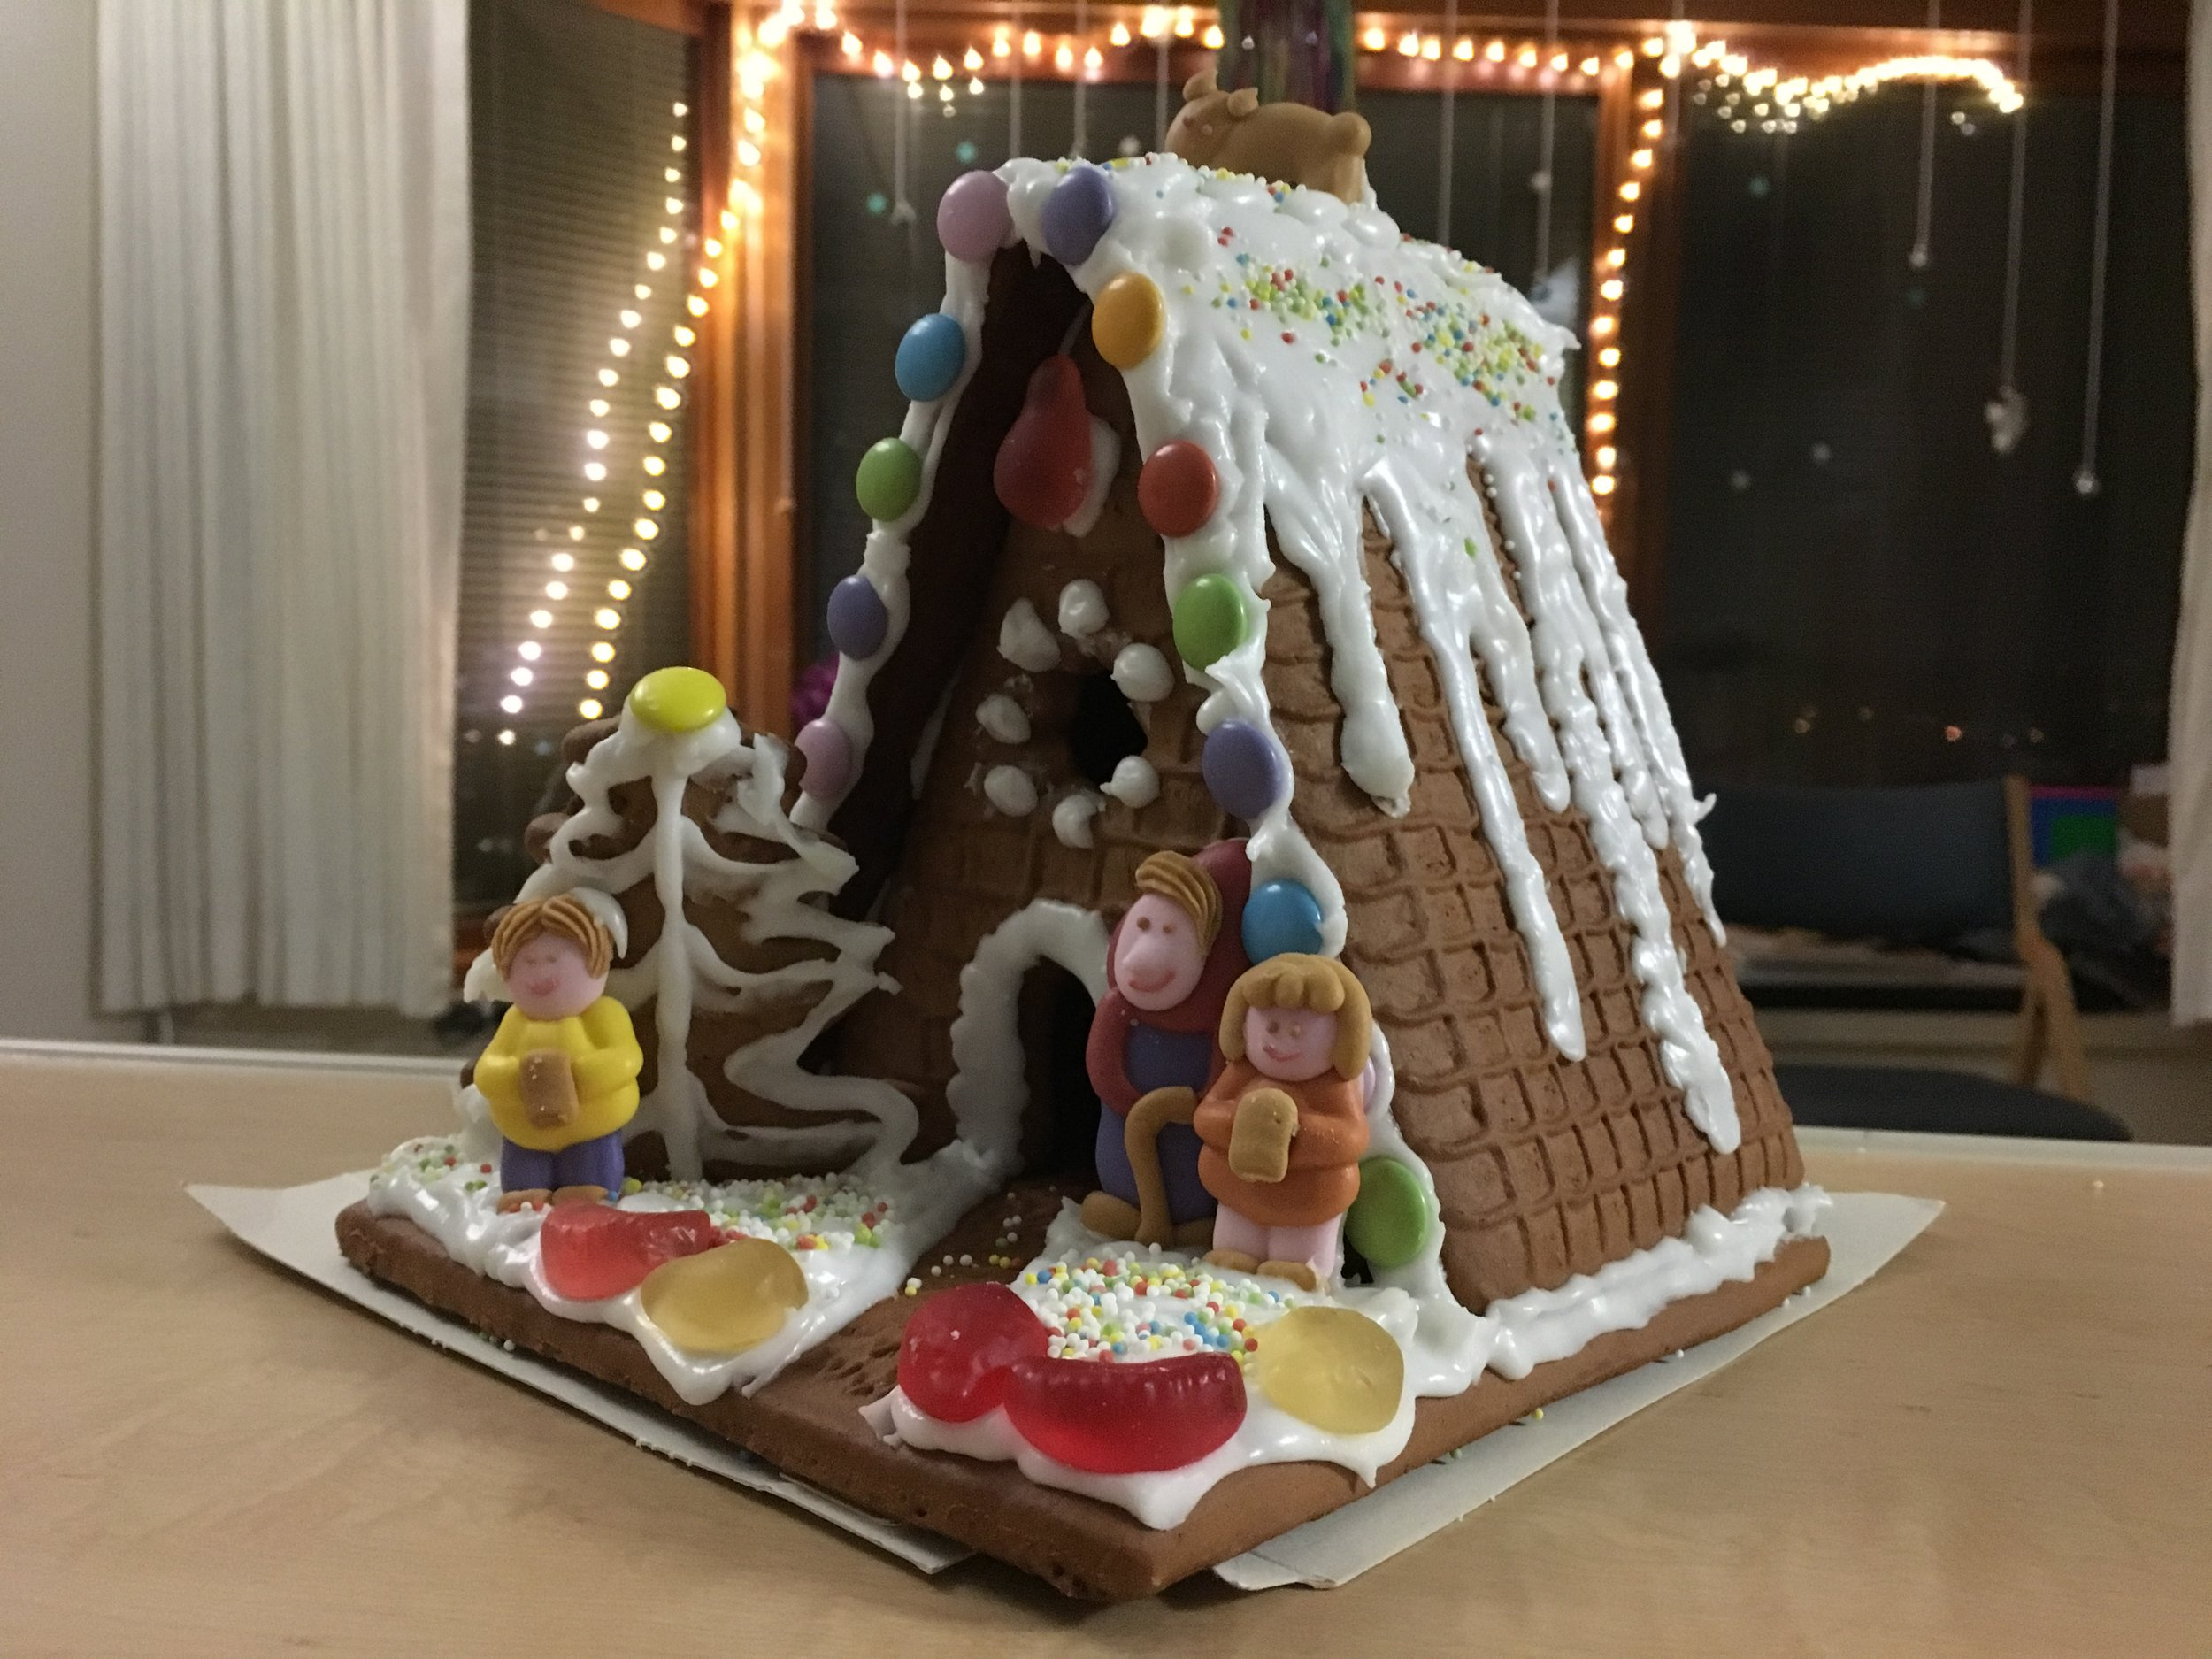 Gingerbread house we made the other week